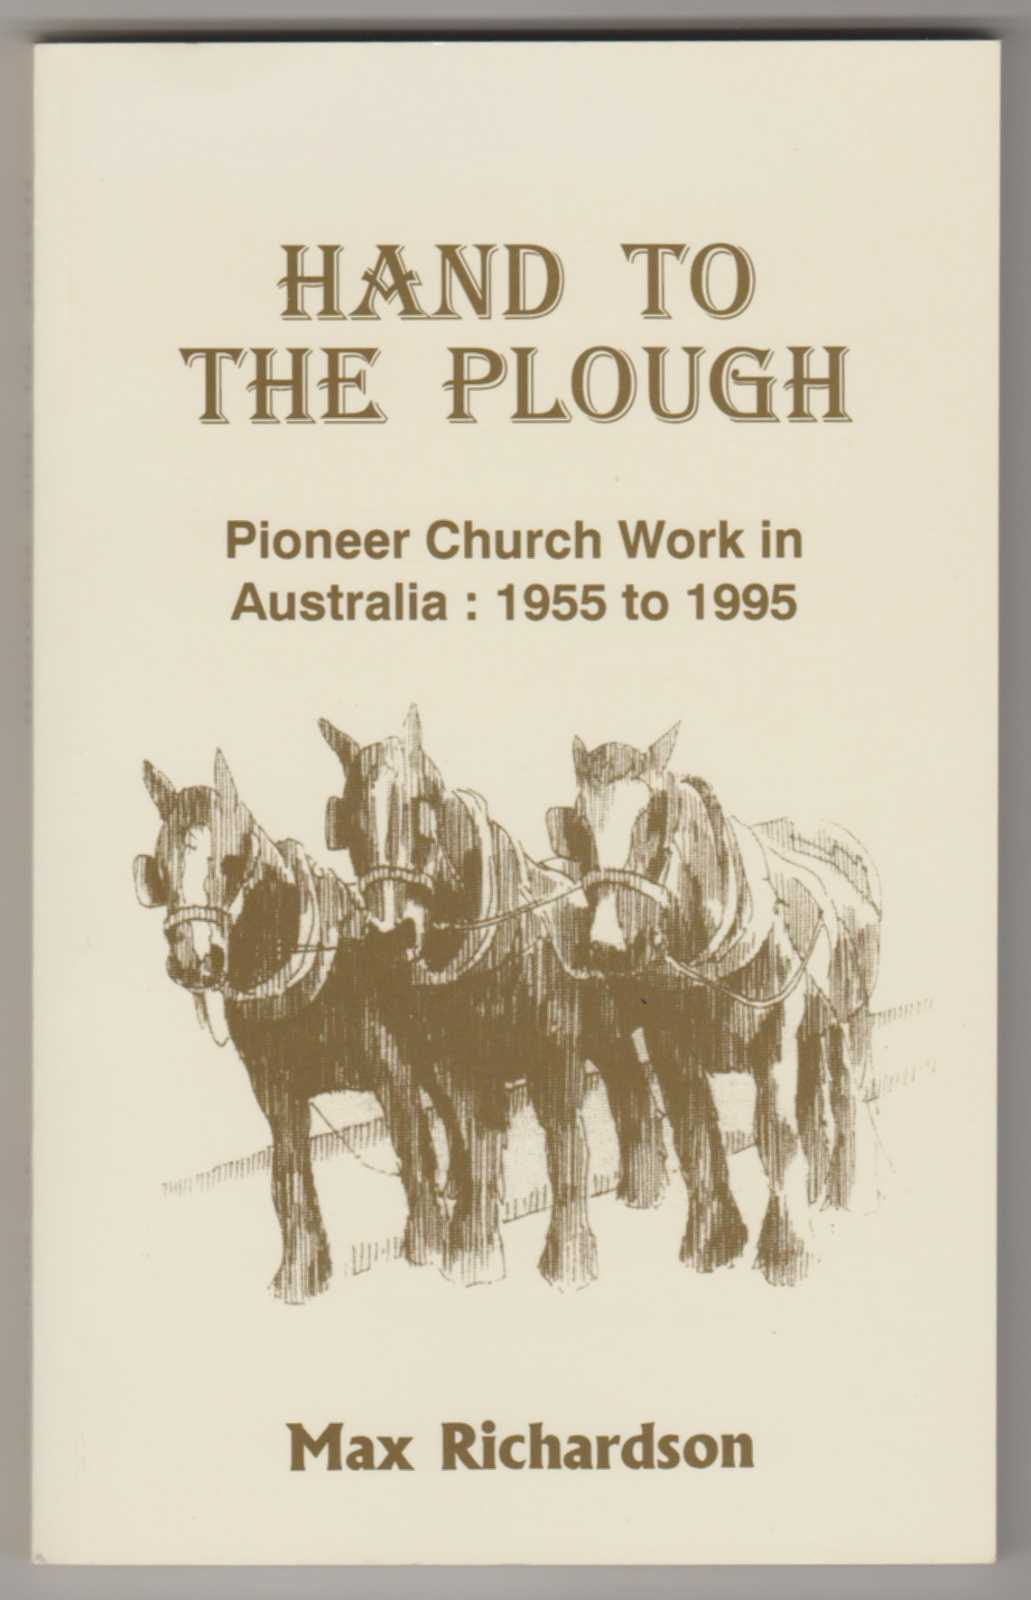 Image for HAND TO THE PLOUGH: Pioneer Church Work in Australia 1955 to 1995